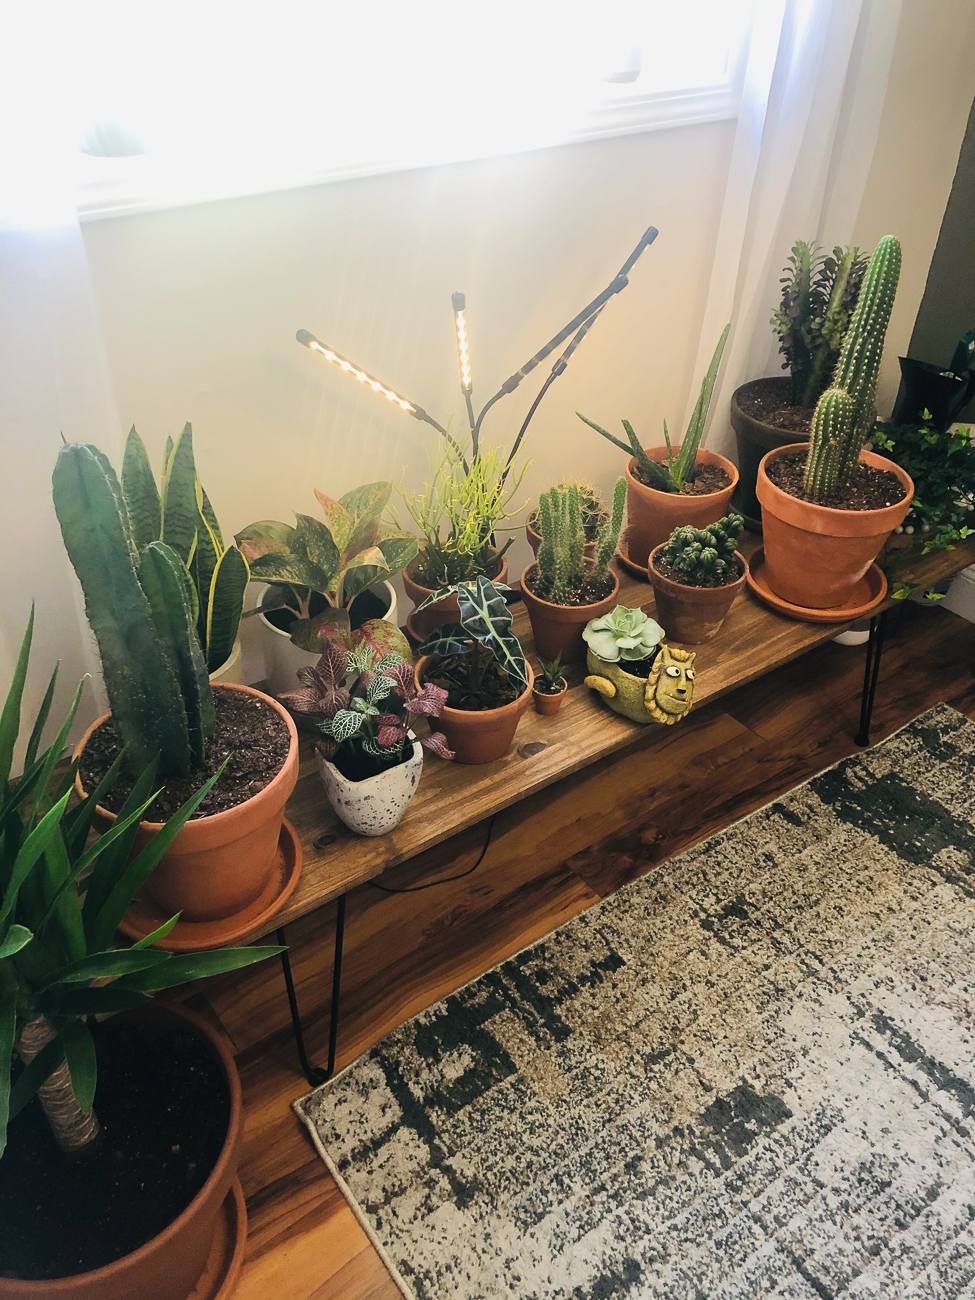 "Megan Huffmeyer (IG: @meg_plantagram) from Colerain Township / ""I have always loved plants and had a small collection that I started a few years ago. As I feel is true for many, my collection expanded even more throughout COVID. My collection started with mainly succulents and cacti, but after seeing all of the variety of calatheas, I wanted to push myself to take care of something more finicky. My inspiration for my room came from wanting to combine my love for the outdoors with my compassion for all living things. With working on a crisis team and dealing with additional stress from COVID, I also felt this sense of urgency to create a space for myself to where I could decompress and unwind within the safety of my home, given limited access to the outdoors. I've also been inspired by the many bloggers out there who share their stories and inspirations, like Hilton Carter and his book 'Wild at Home'. My favorite part about this room is sitting in my rocking chair in the corner and reading up on my current plants. I won't lie, I also spend hours gasping in excitement when I see new growths."" / Image courtesy of Megan Huffmeyer // Published: 6.13.20"